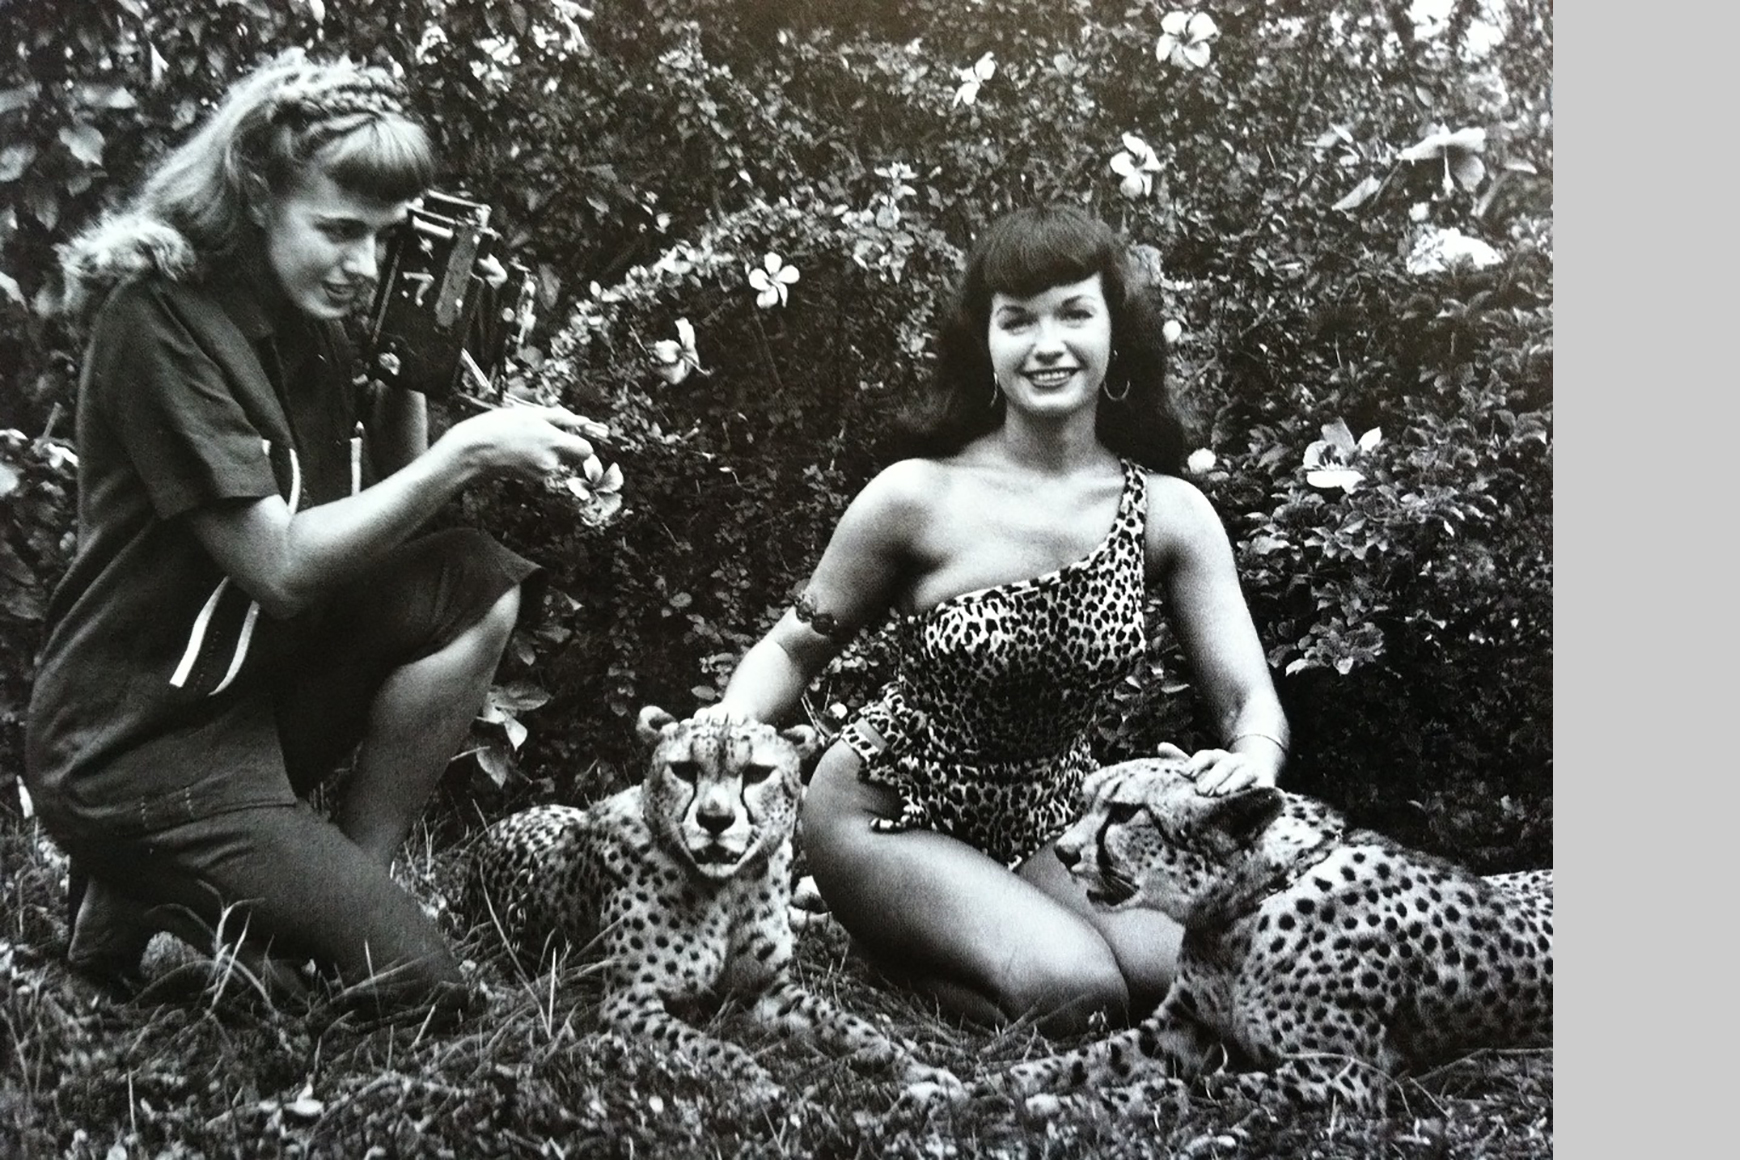 Bunny Yeager en Bettie Page / Foto Collectie Rizzoli